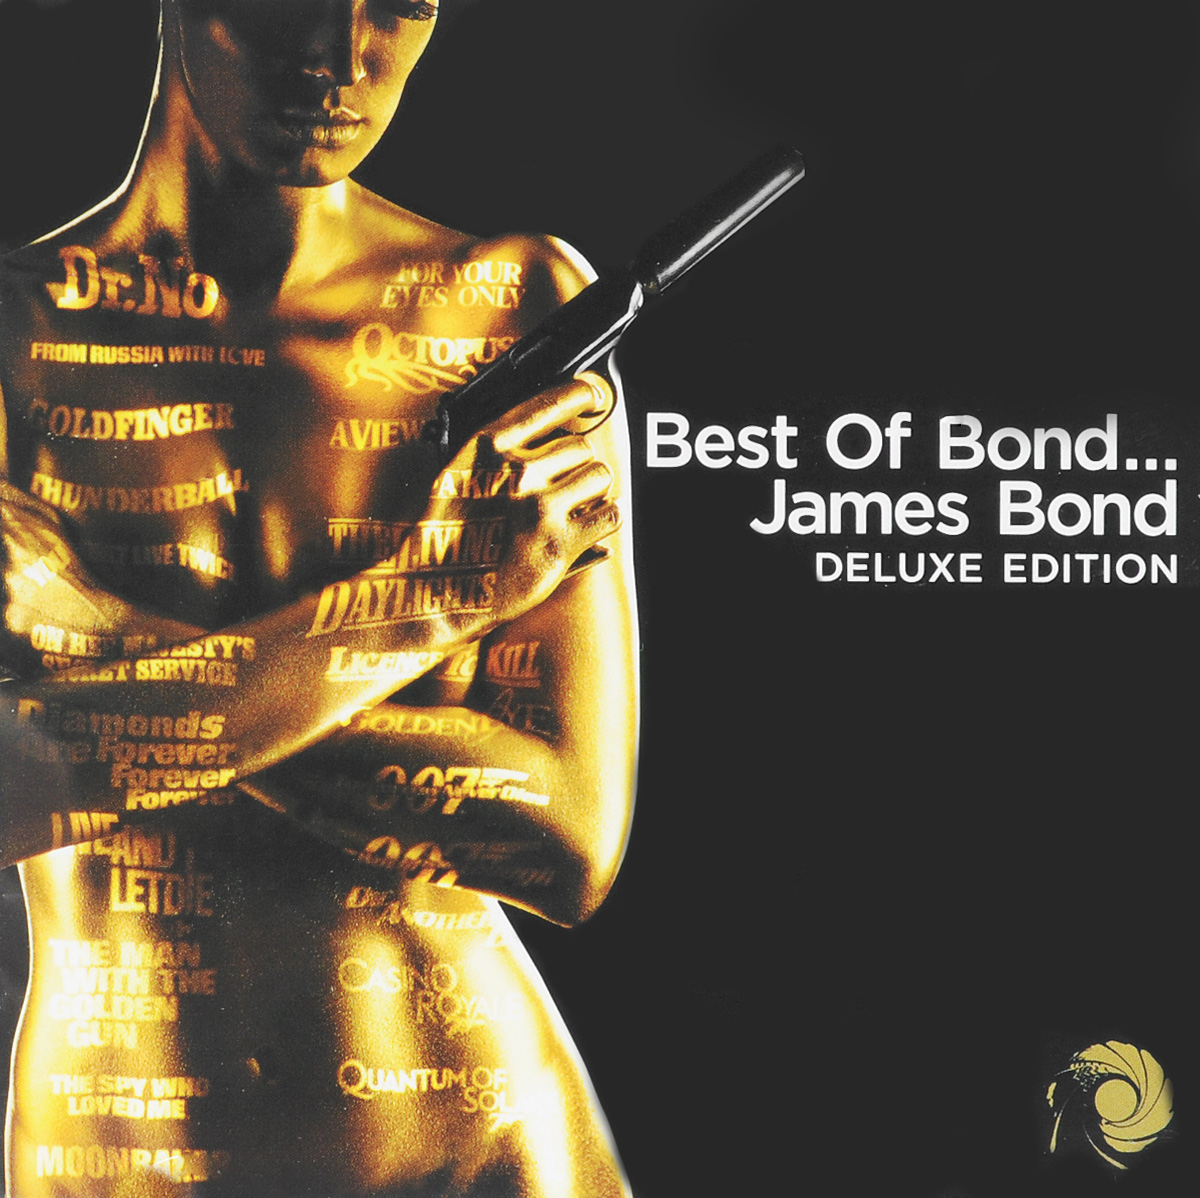 Best Of Bond... James Bond. Deluxe Edition (2 CD) zenfone 2 deluxe special edition